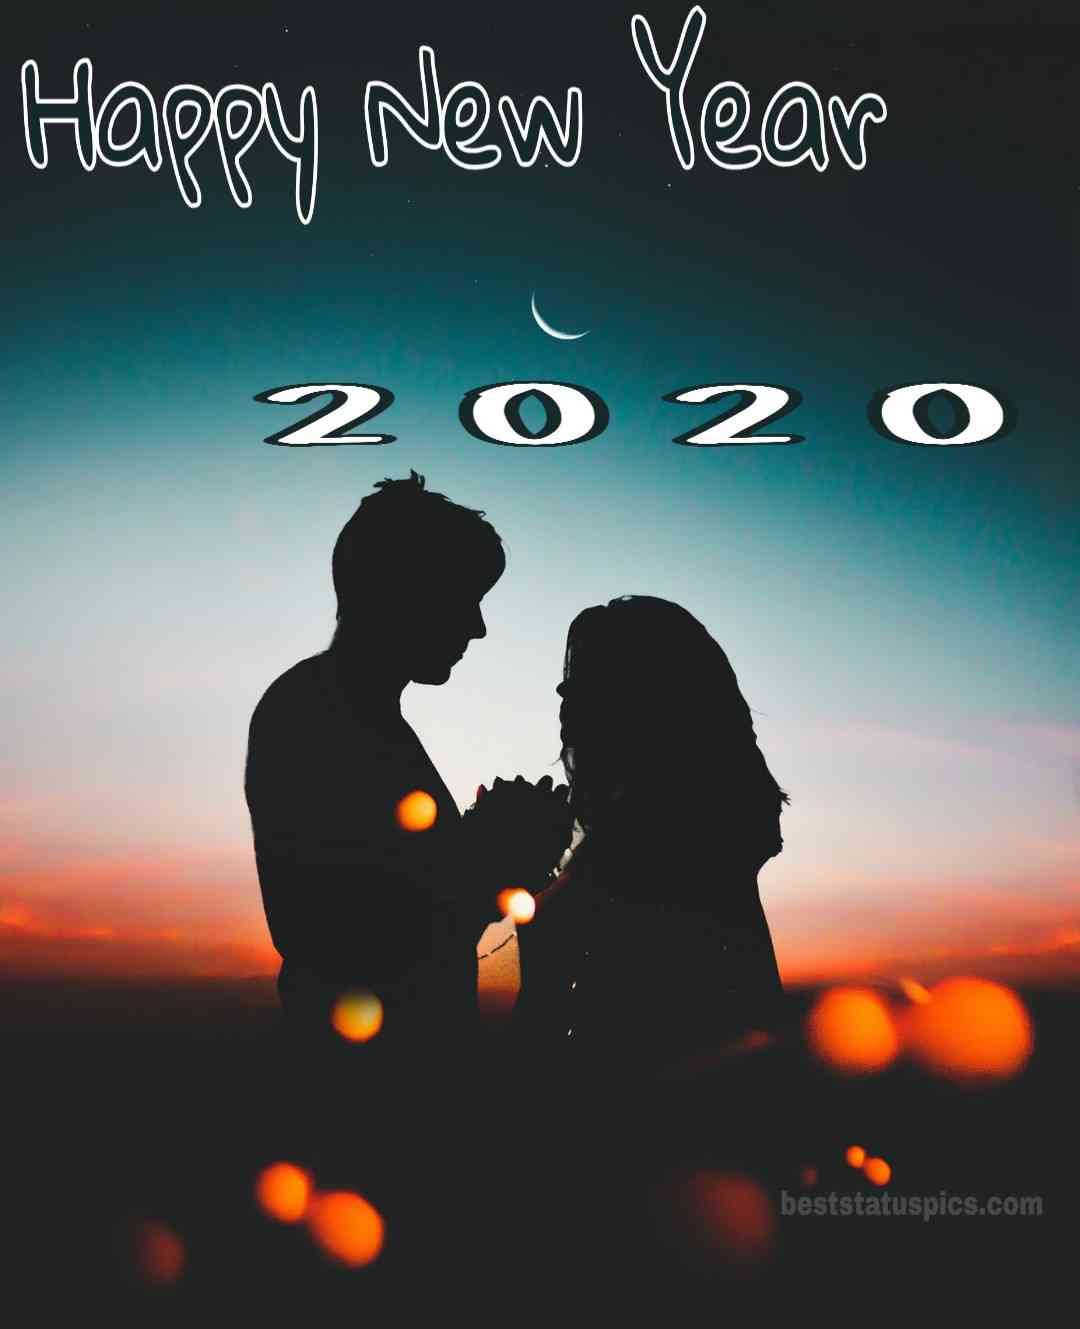 Happy New Year 2020 Image with lovely couple Moon Whatsapp